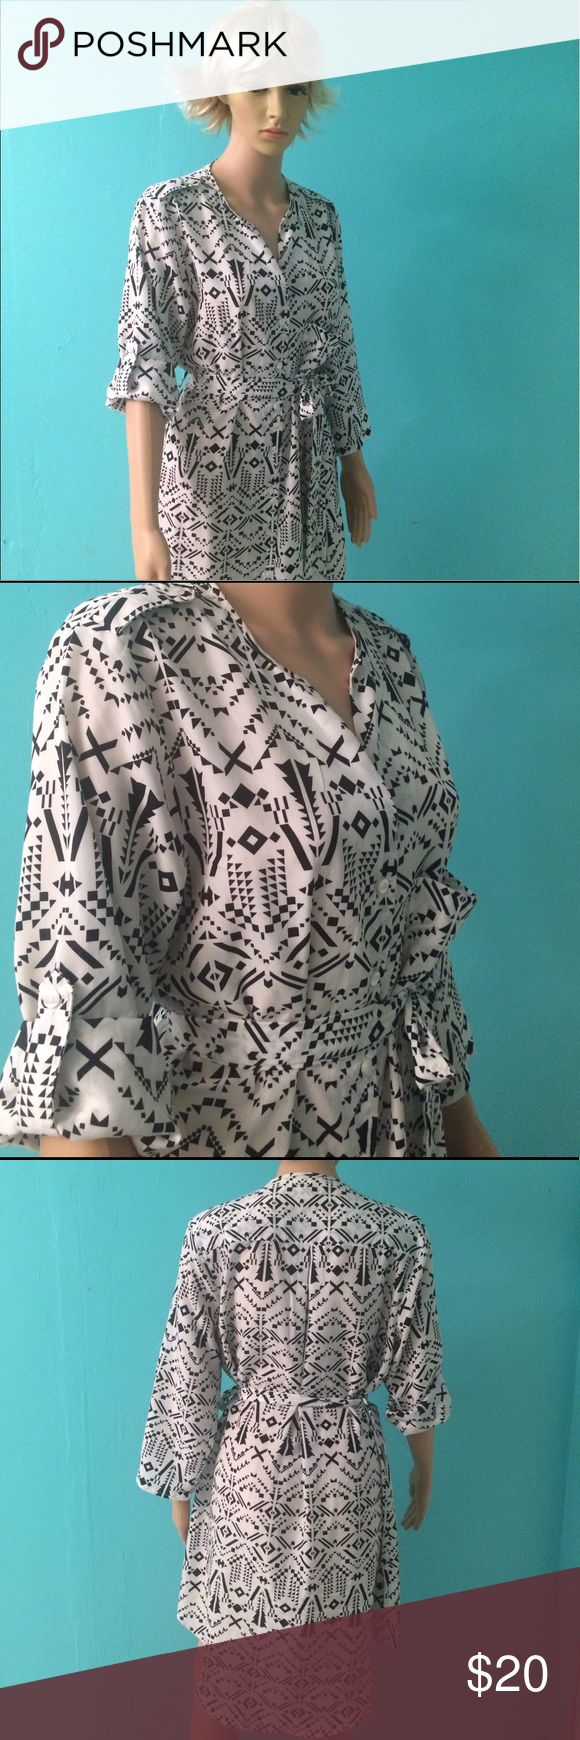 Black and White Shirt Dress. Nice patterned shirt dress that can be worn with long sleeves or short sleeves. Its very comfortable and great for any event. It can also be worn over a black dress. It comes with a cloth belt. It is shorter in the front than the back.      shirt dress, dress, white dress, black dress fate Dresses High Low